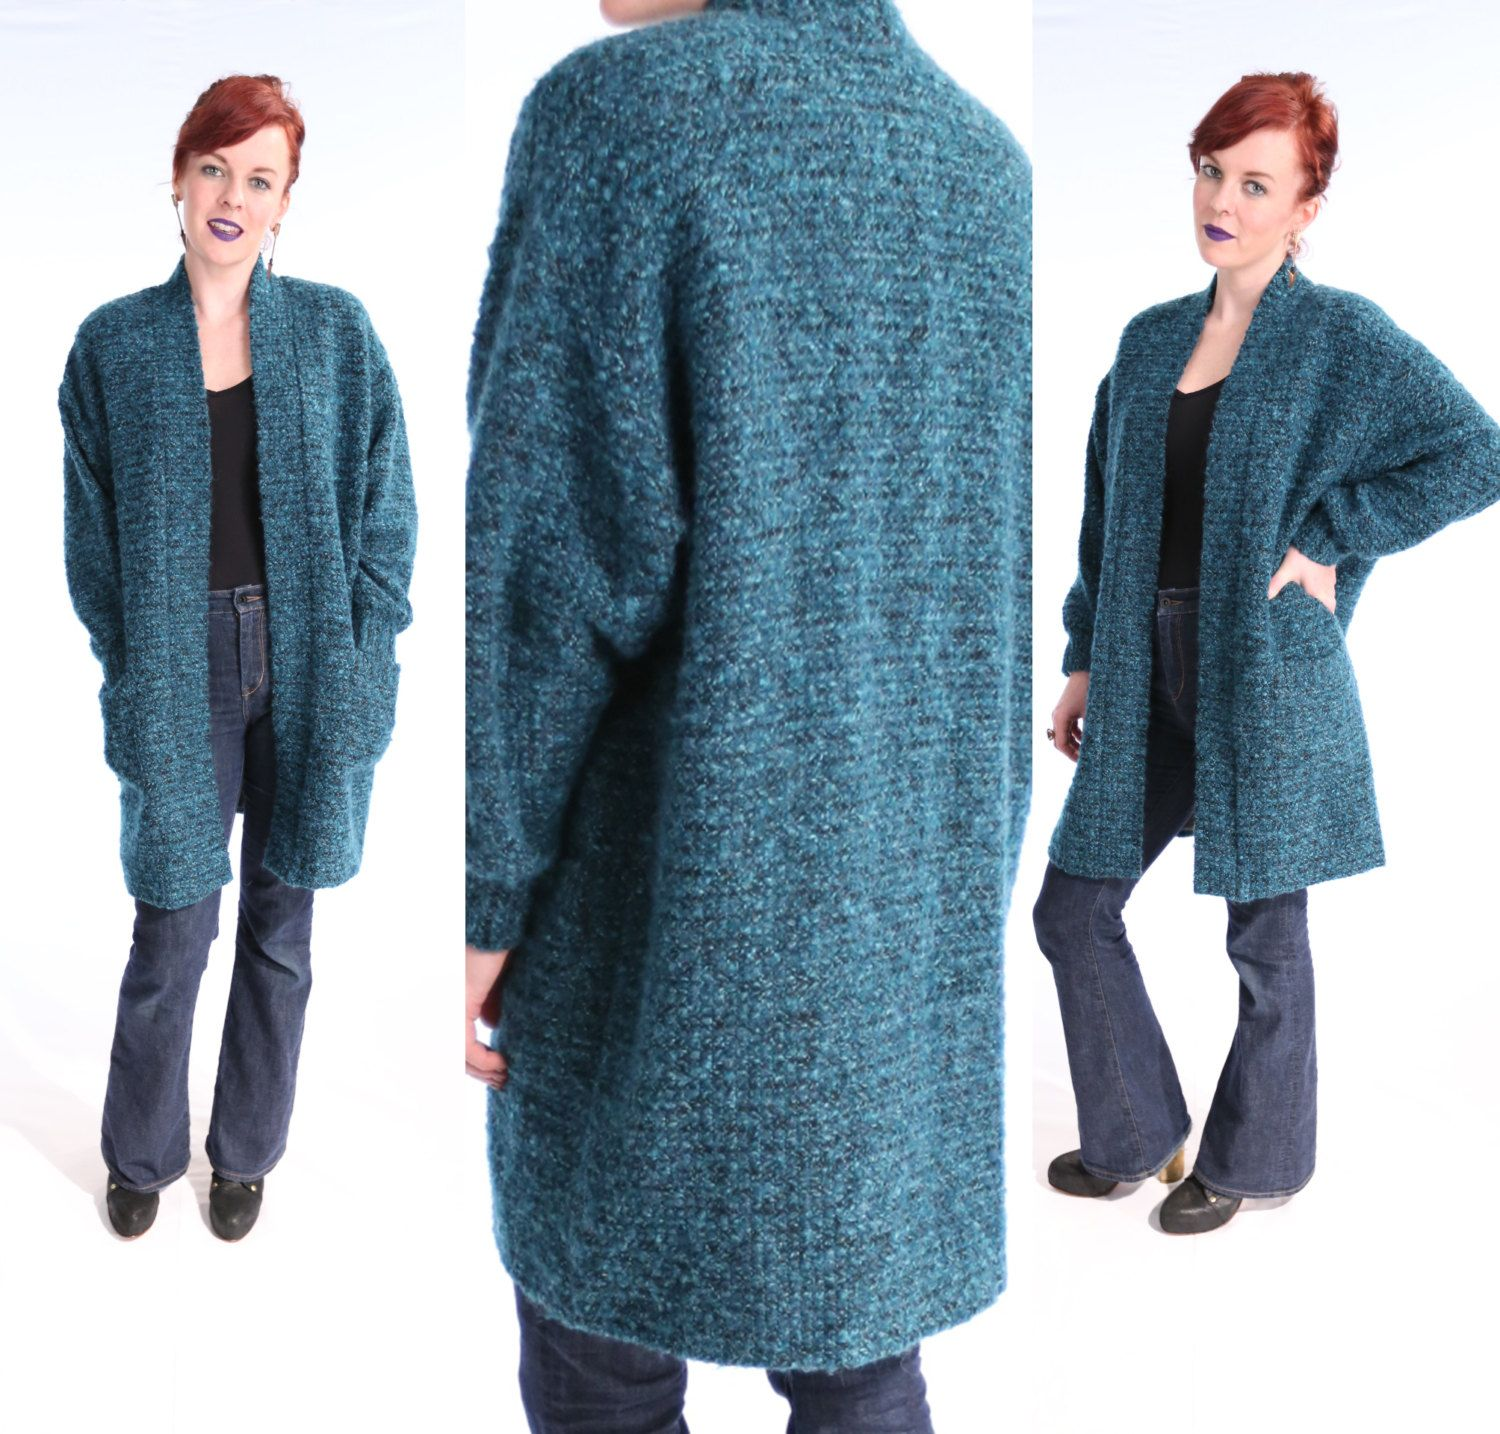 Vintage 1980's Long KNIT Cardigan Sweater Jacket TEAL Black Space ...